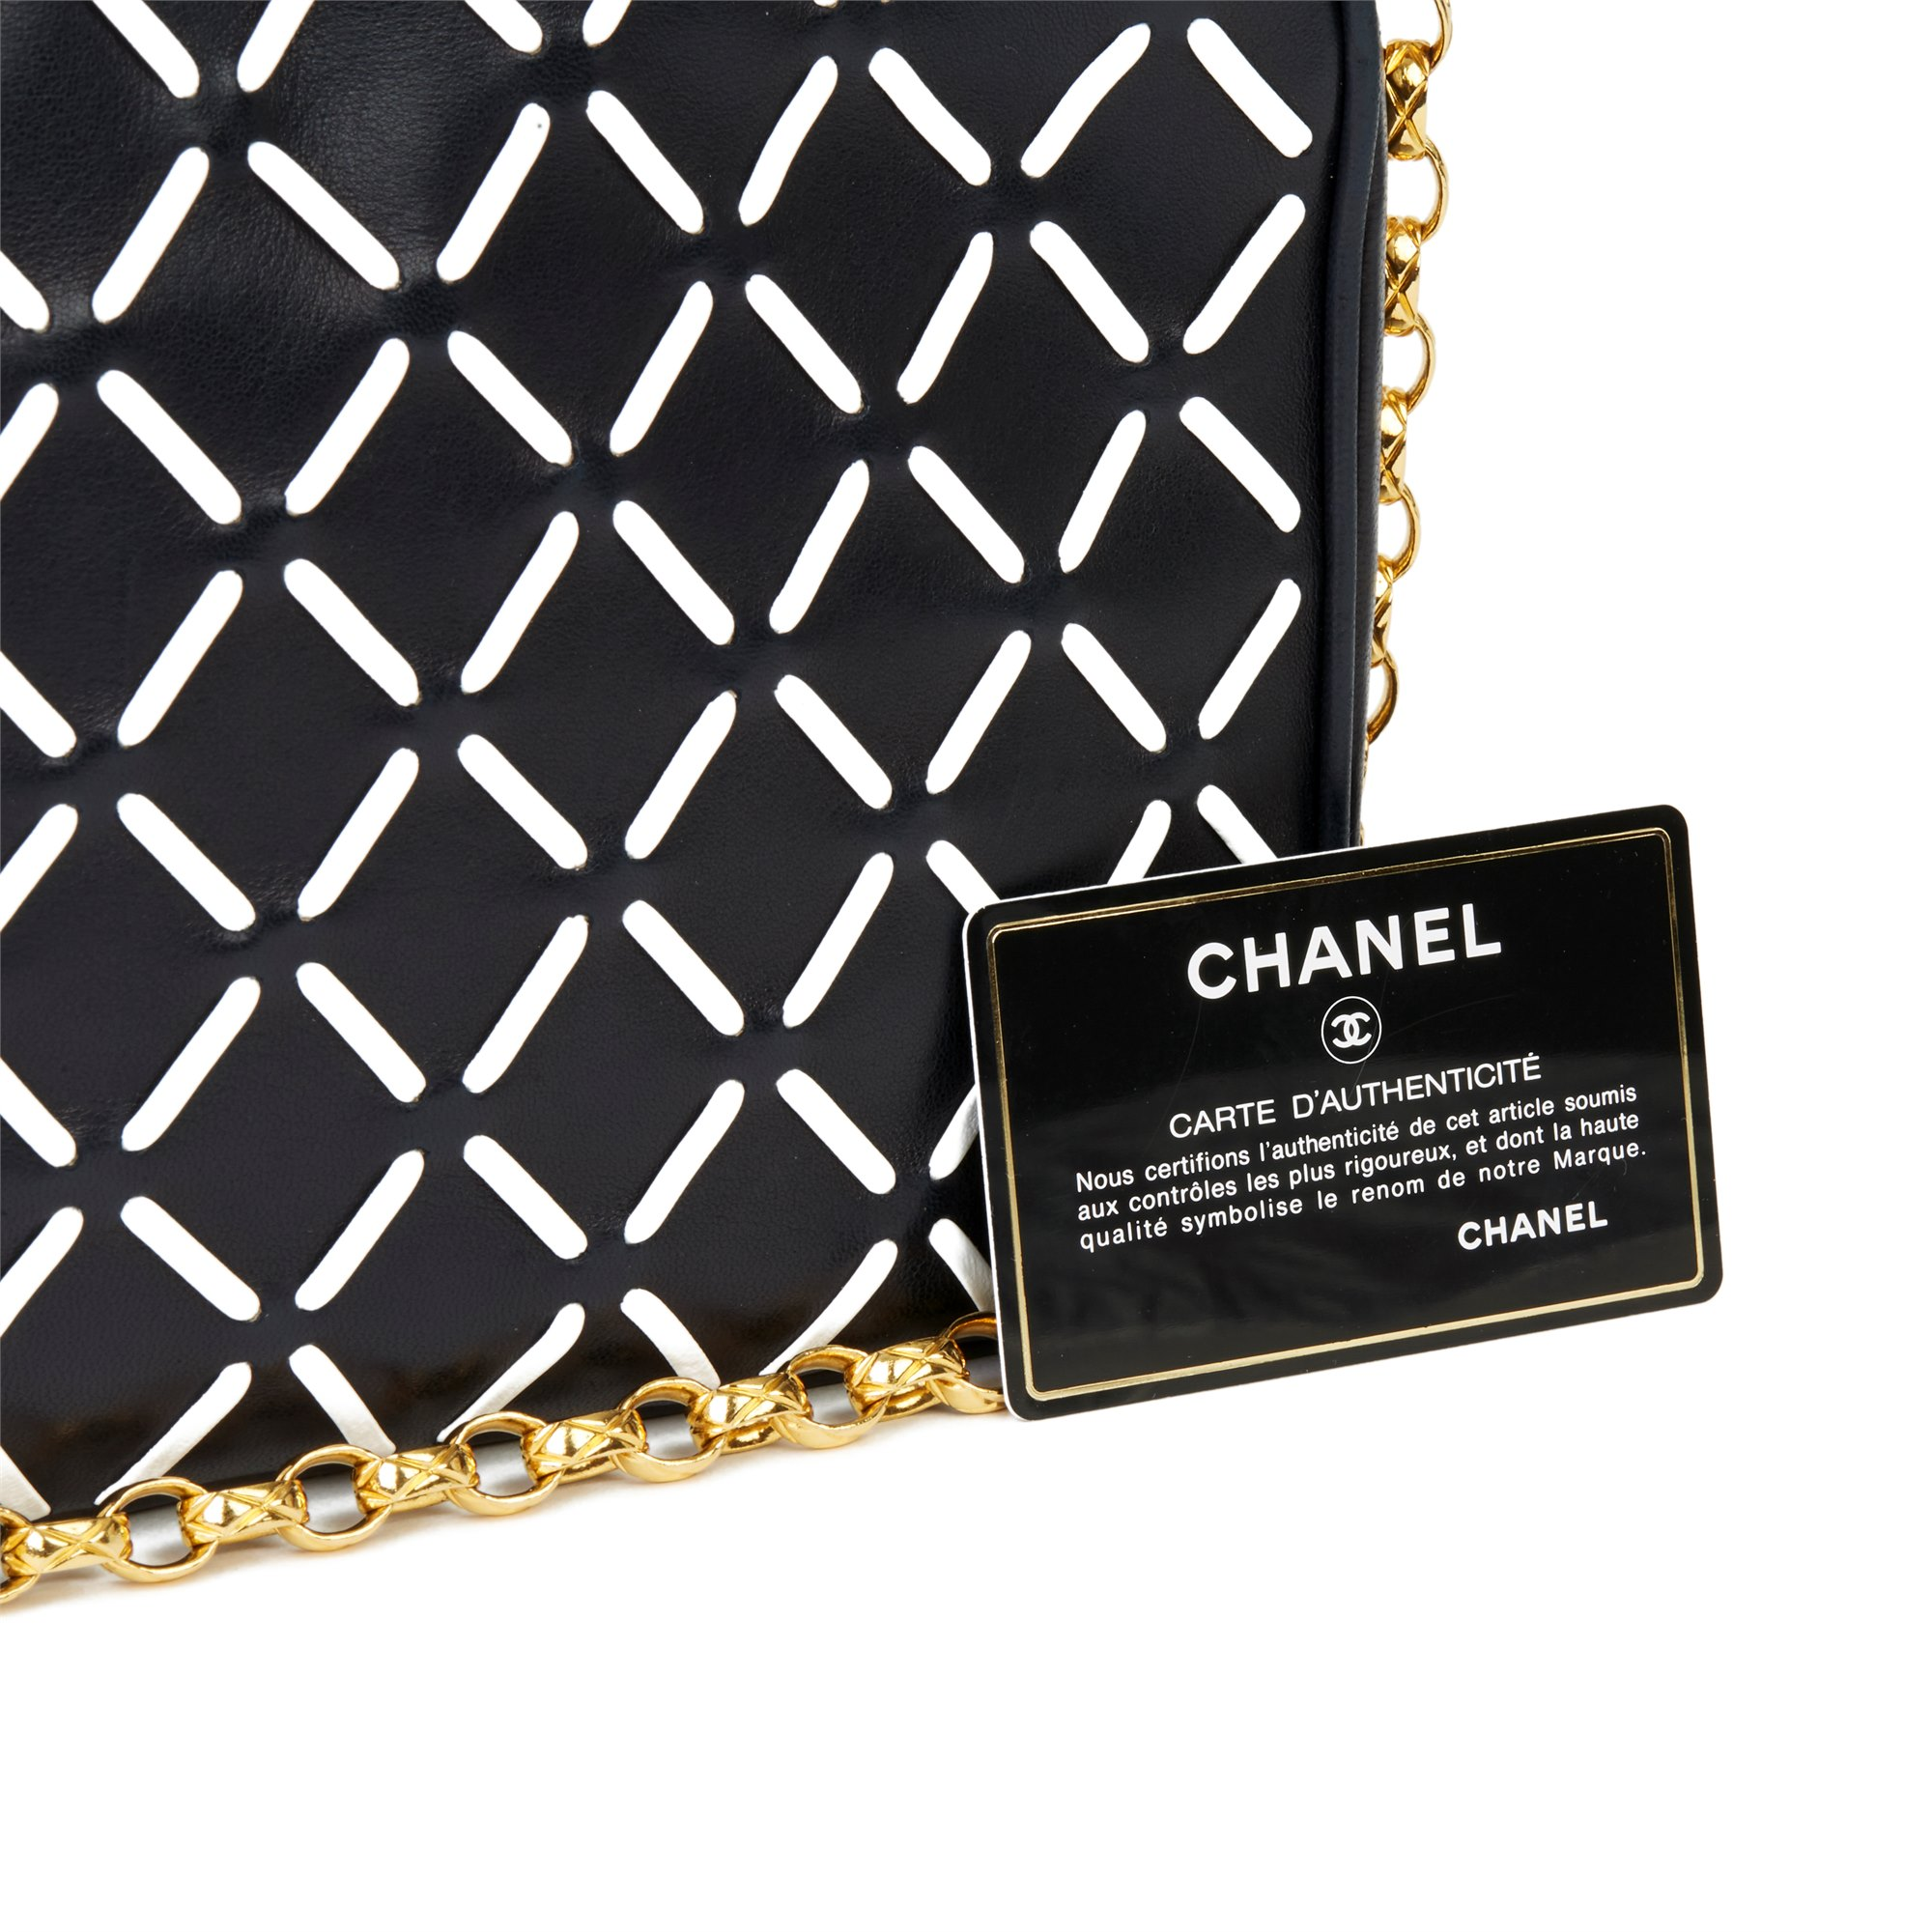 Chanel Navy & White Woven-Stitched Lambskin Vintage Timeless Fringe Camera Bag